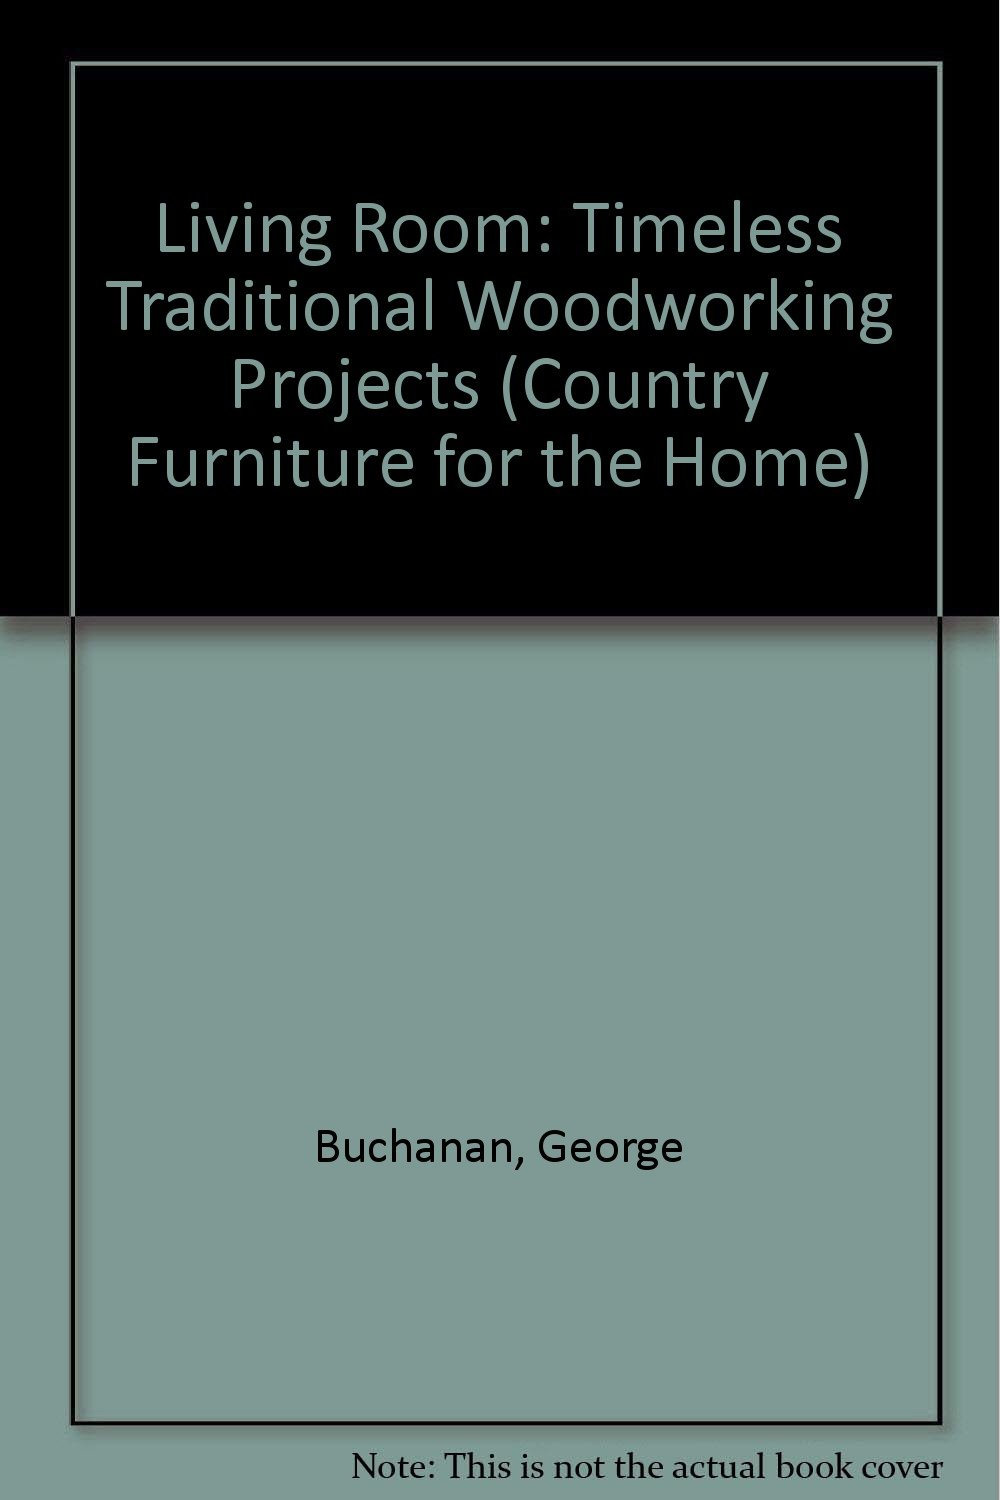 The Living Room: Timeless Traditional Woodworking Projects (Country Furniture for the Home)